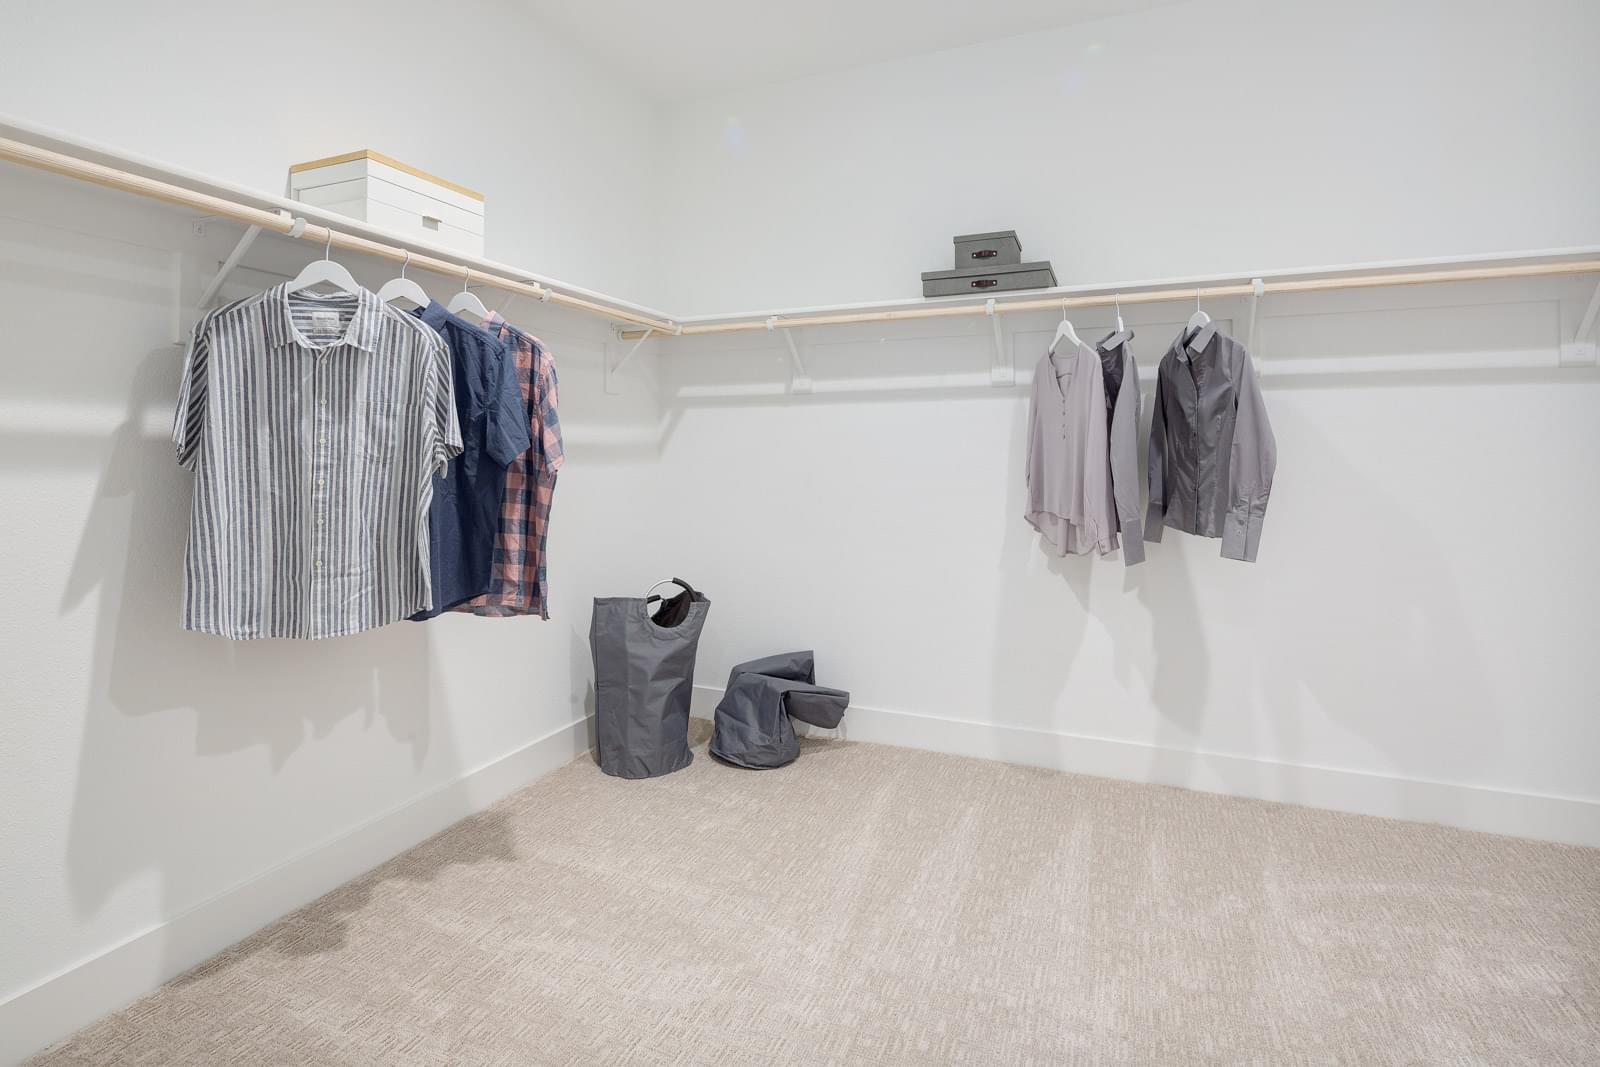 Residence 4 Owner's Walk-In Closet